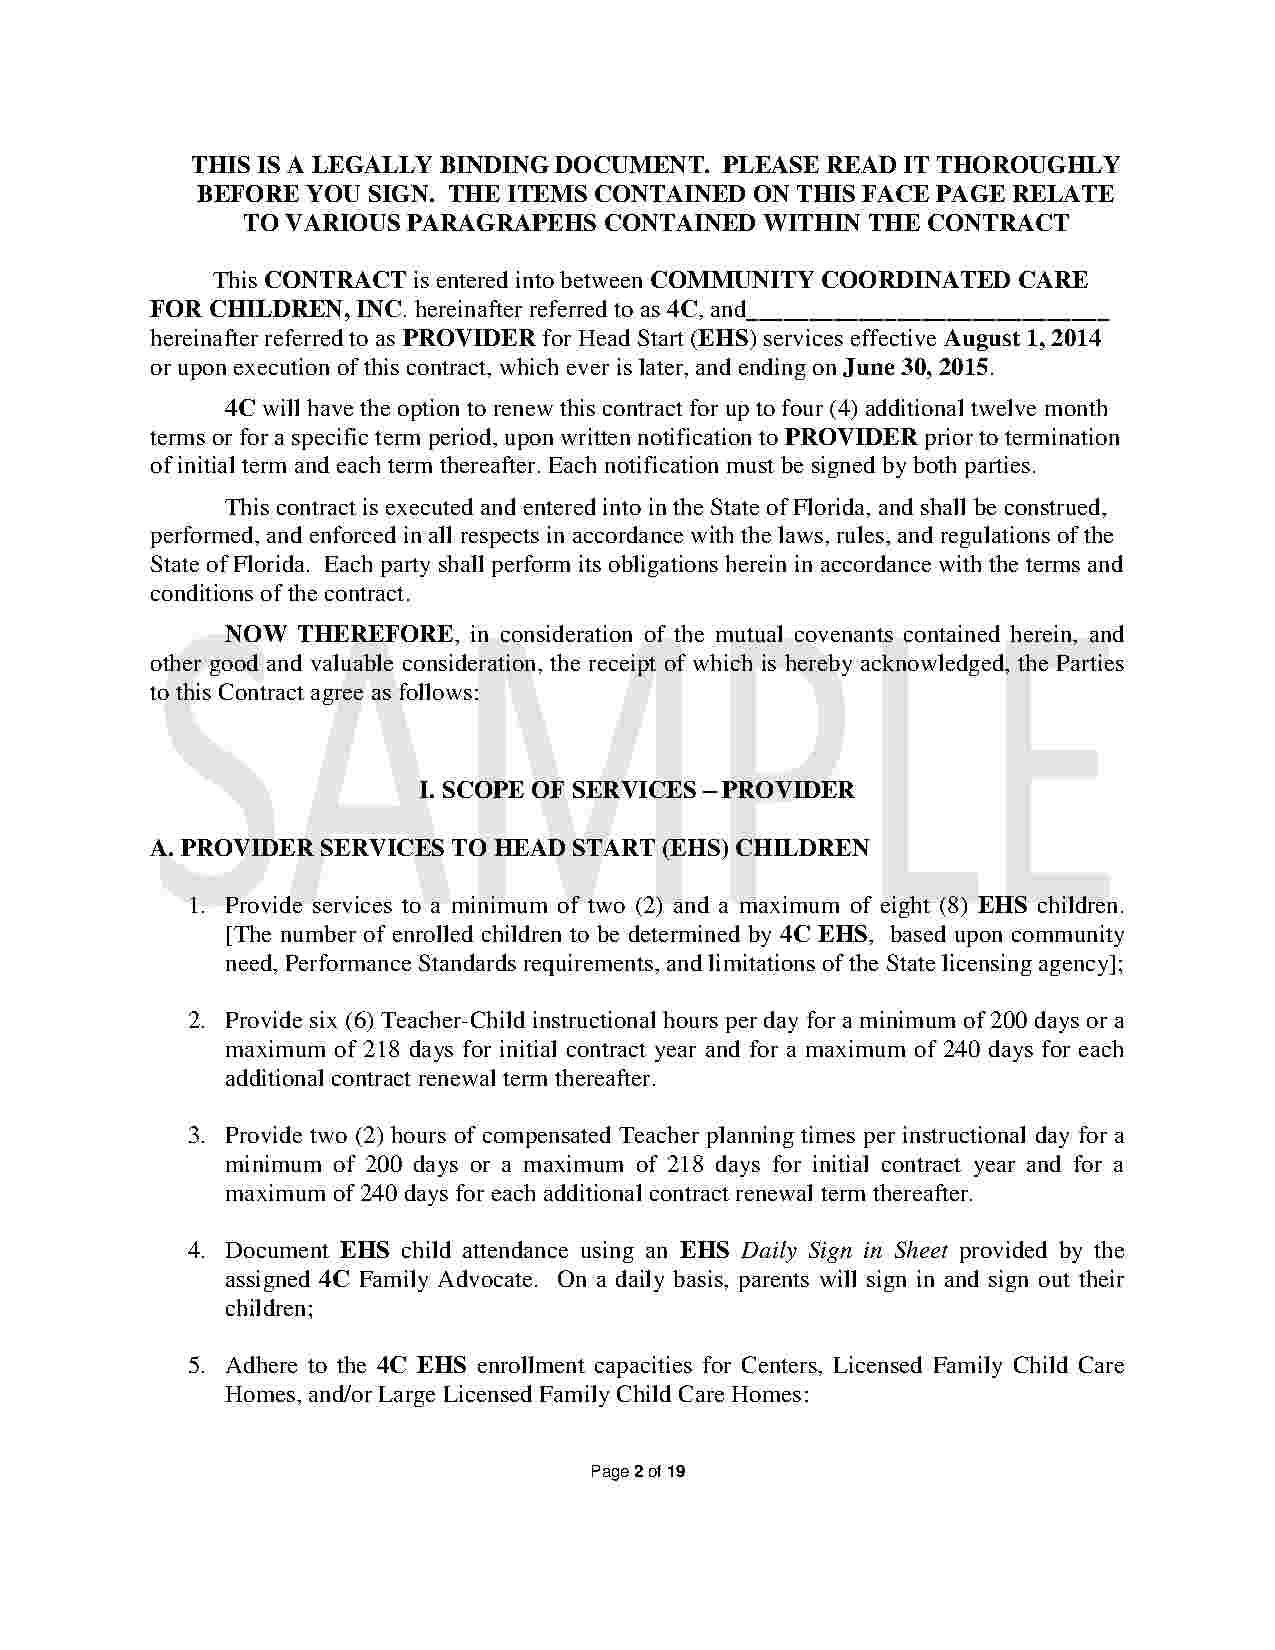 Templates Home Improvement Contract Templates Hunter Contract Template Home Improvement Contract